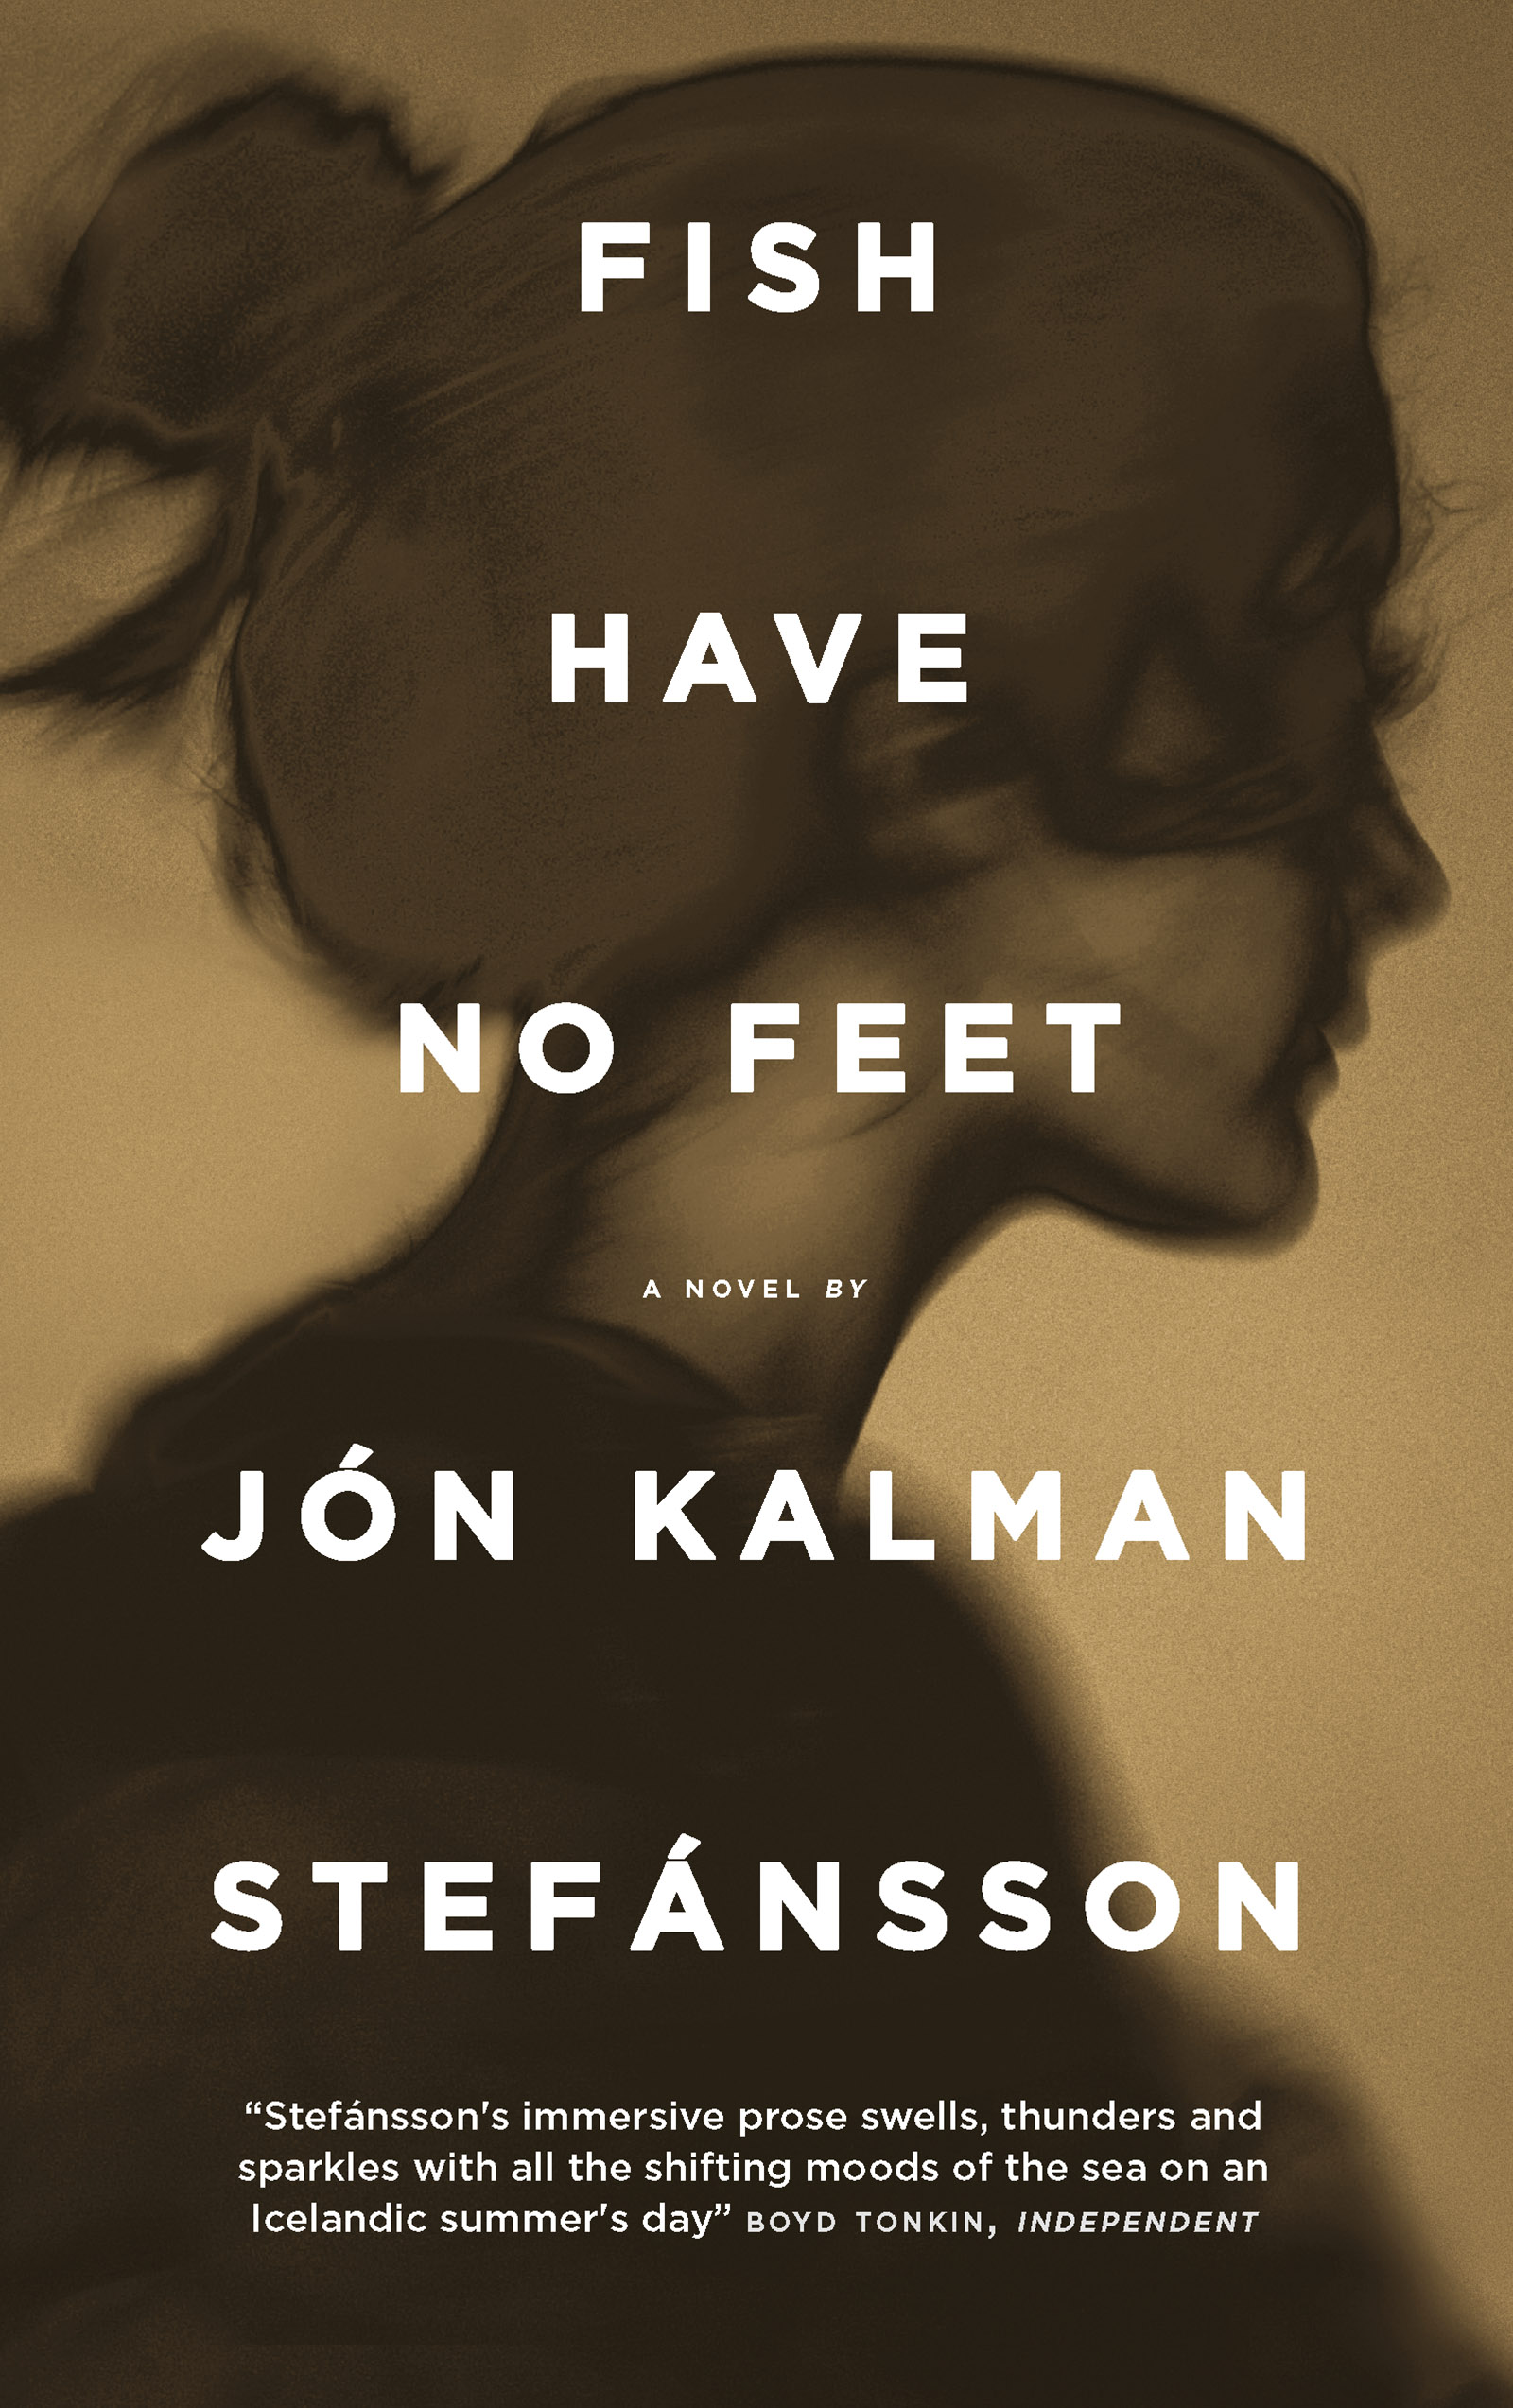 86.jon kalman stefansson fish have no feet